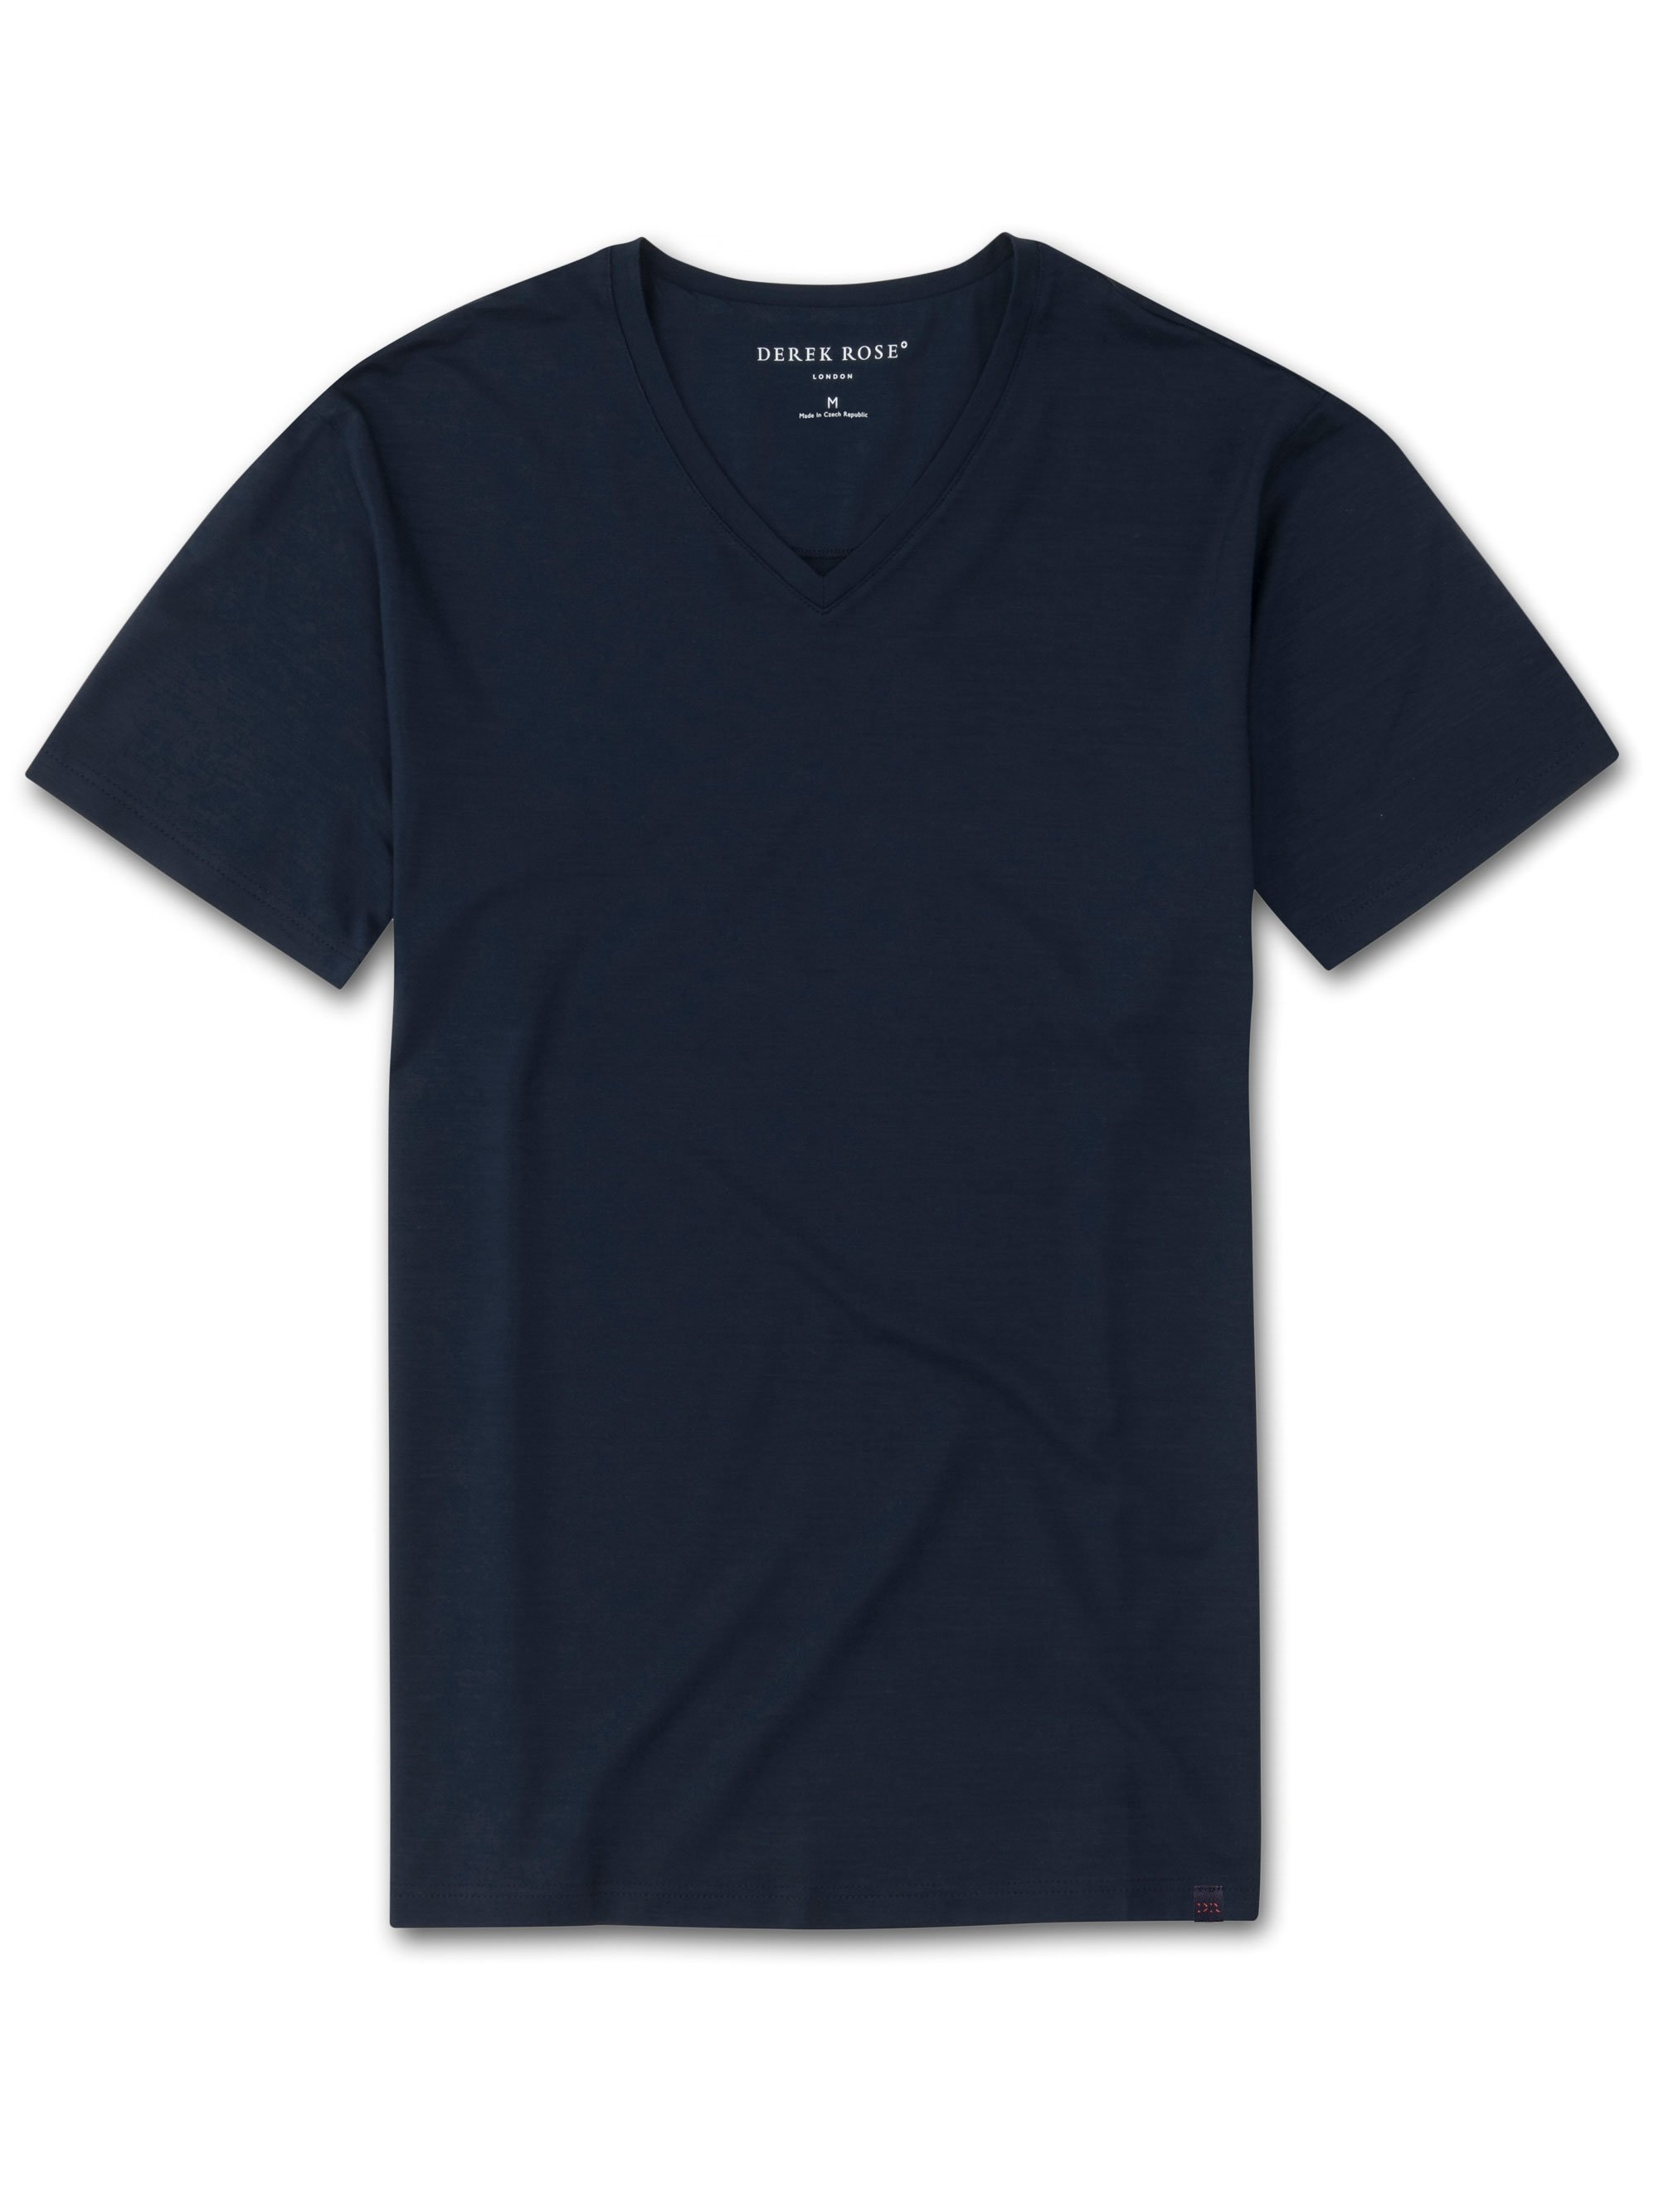 Men's Short Sleeve V-Neck T-Shirt Basel Micro Modal Stretch Navy